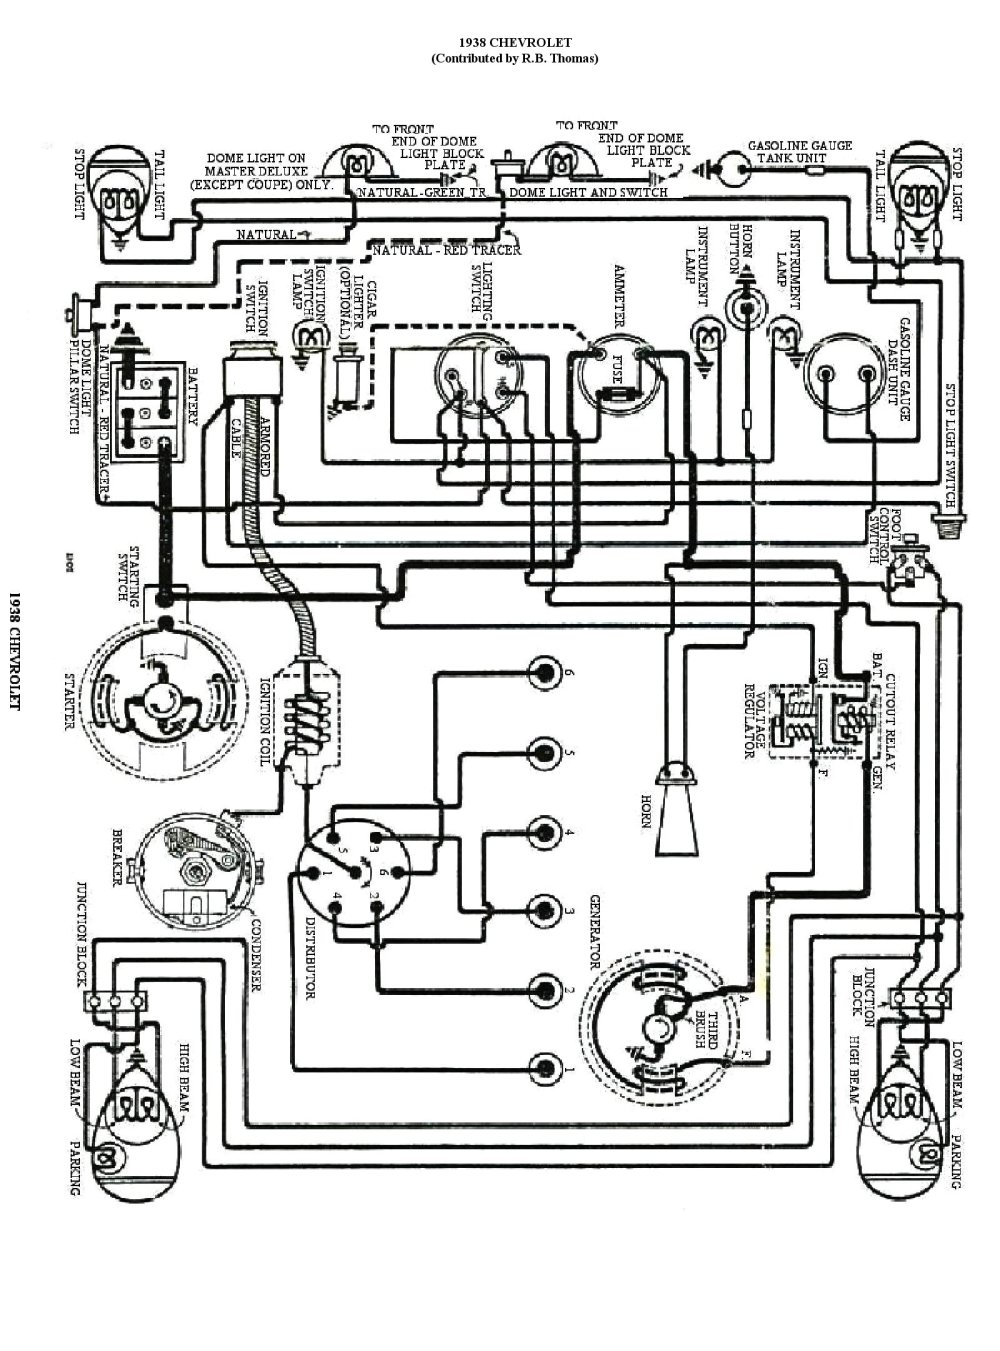 medium resolution of free wiring diagram corvair pontiac wiring diagram blogs wiring diagram 1990 cadillac allante 1941 cadillac wiring diagram